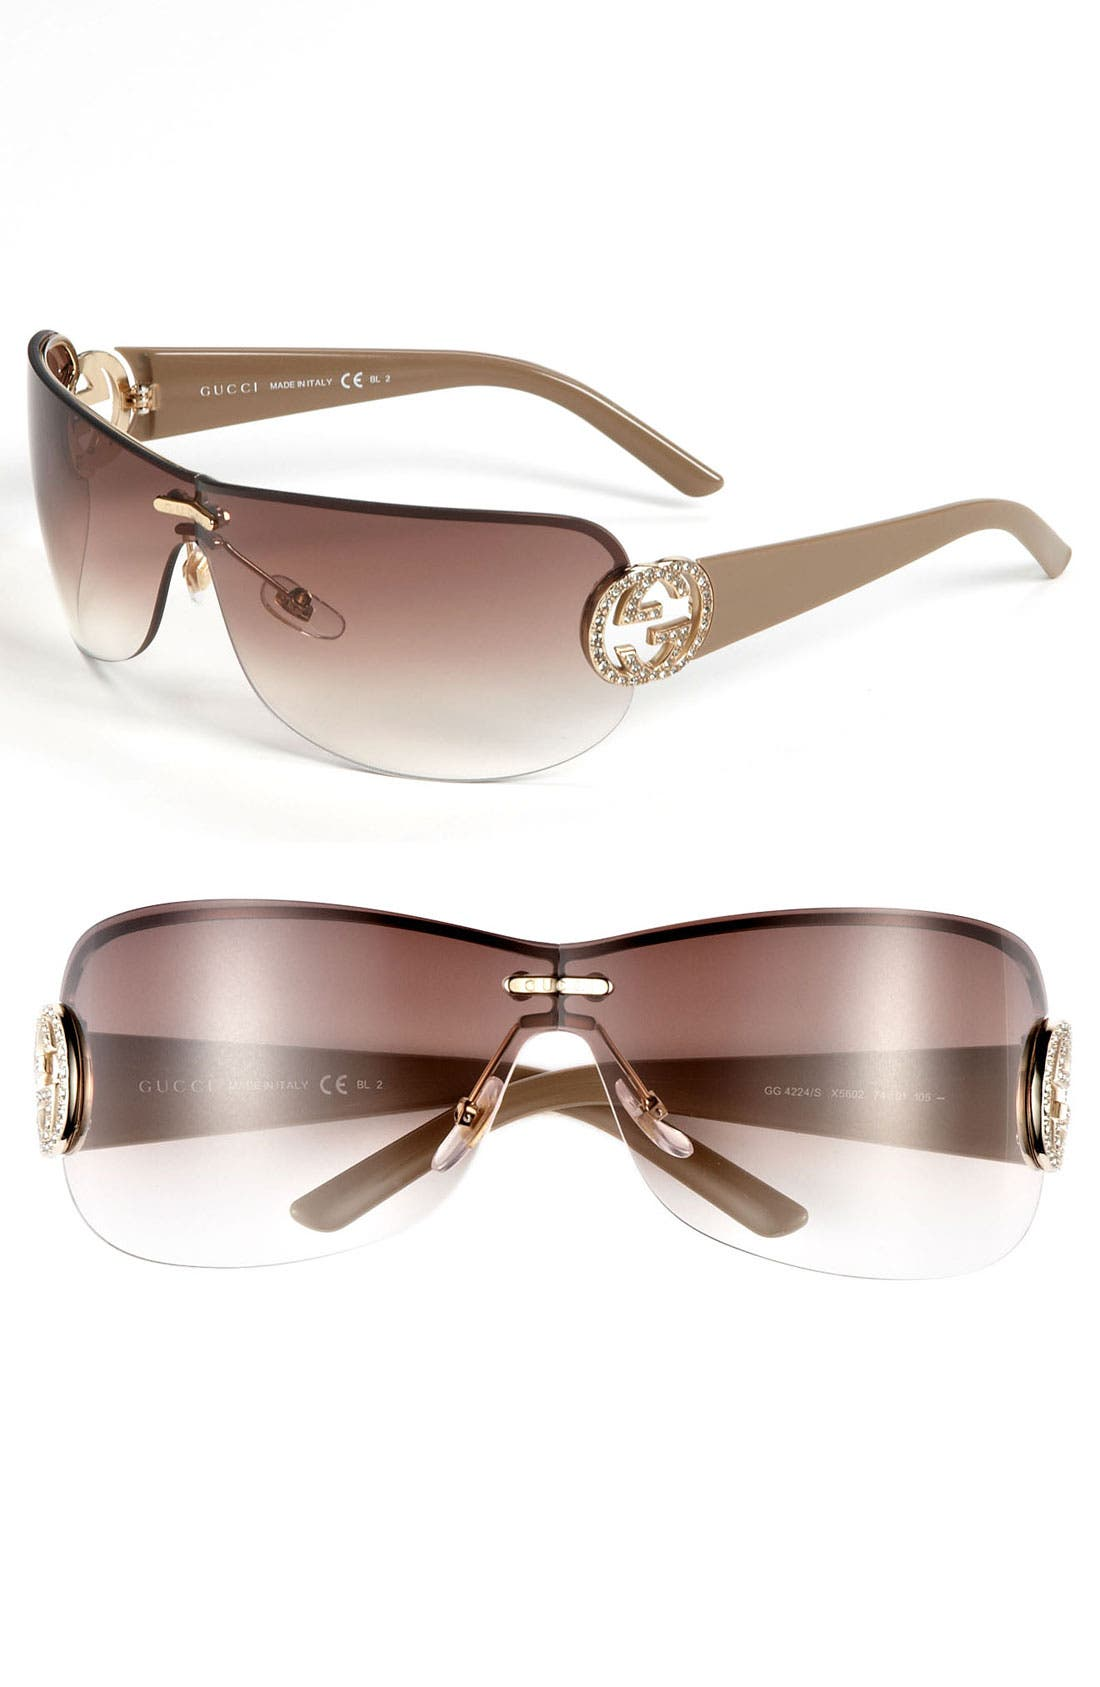 Alternate Image 1 Selected - Gucci 74mm Swarovski Crystal Rimless Shield Sunglasses